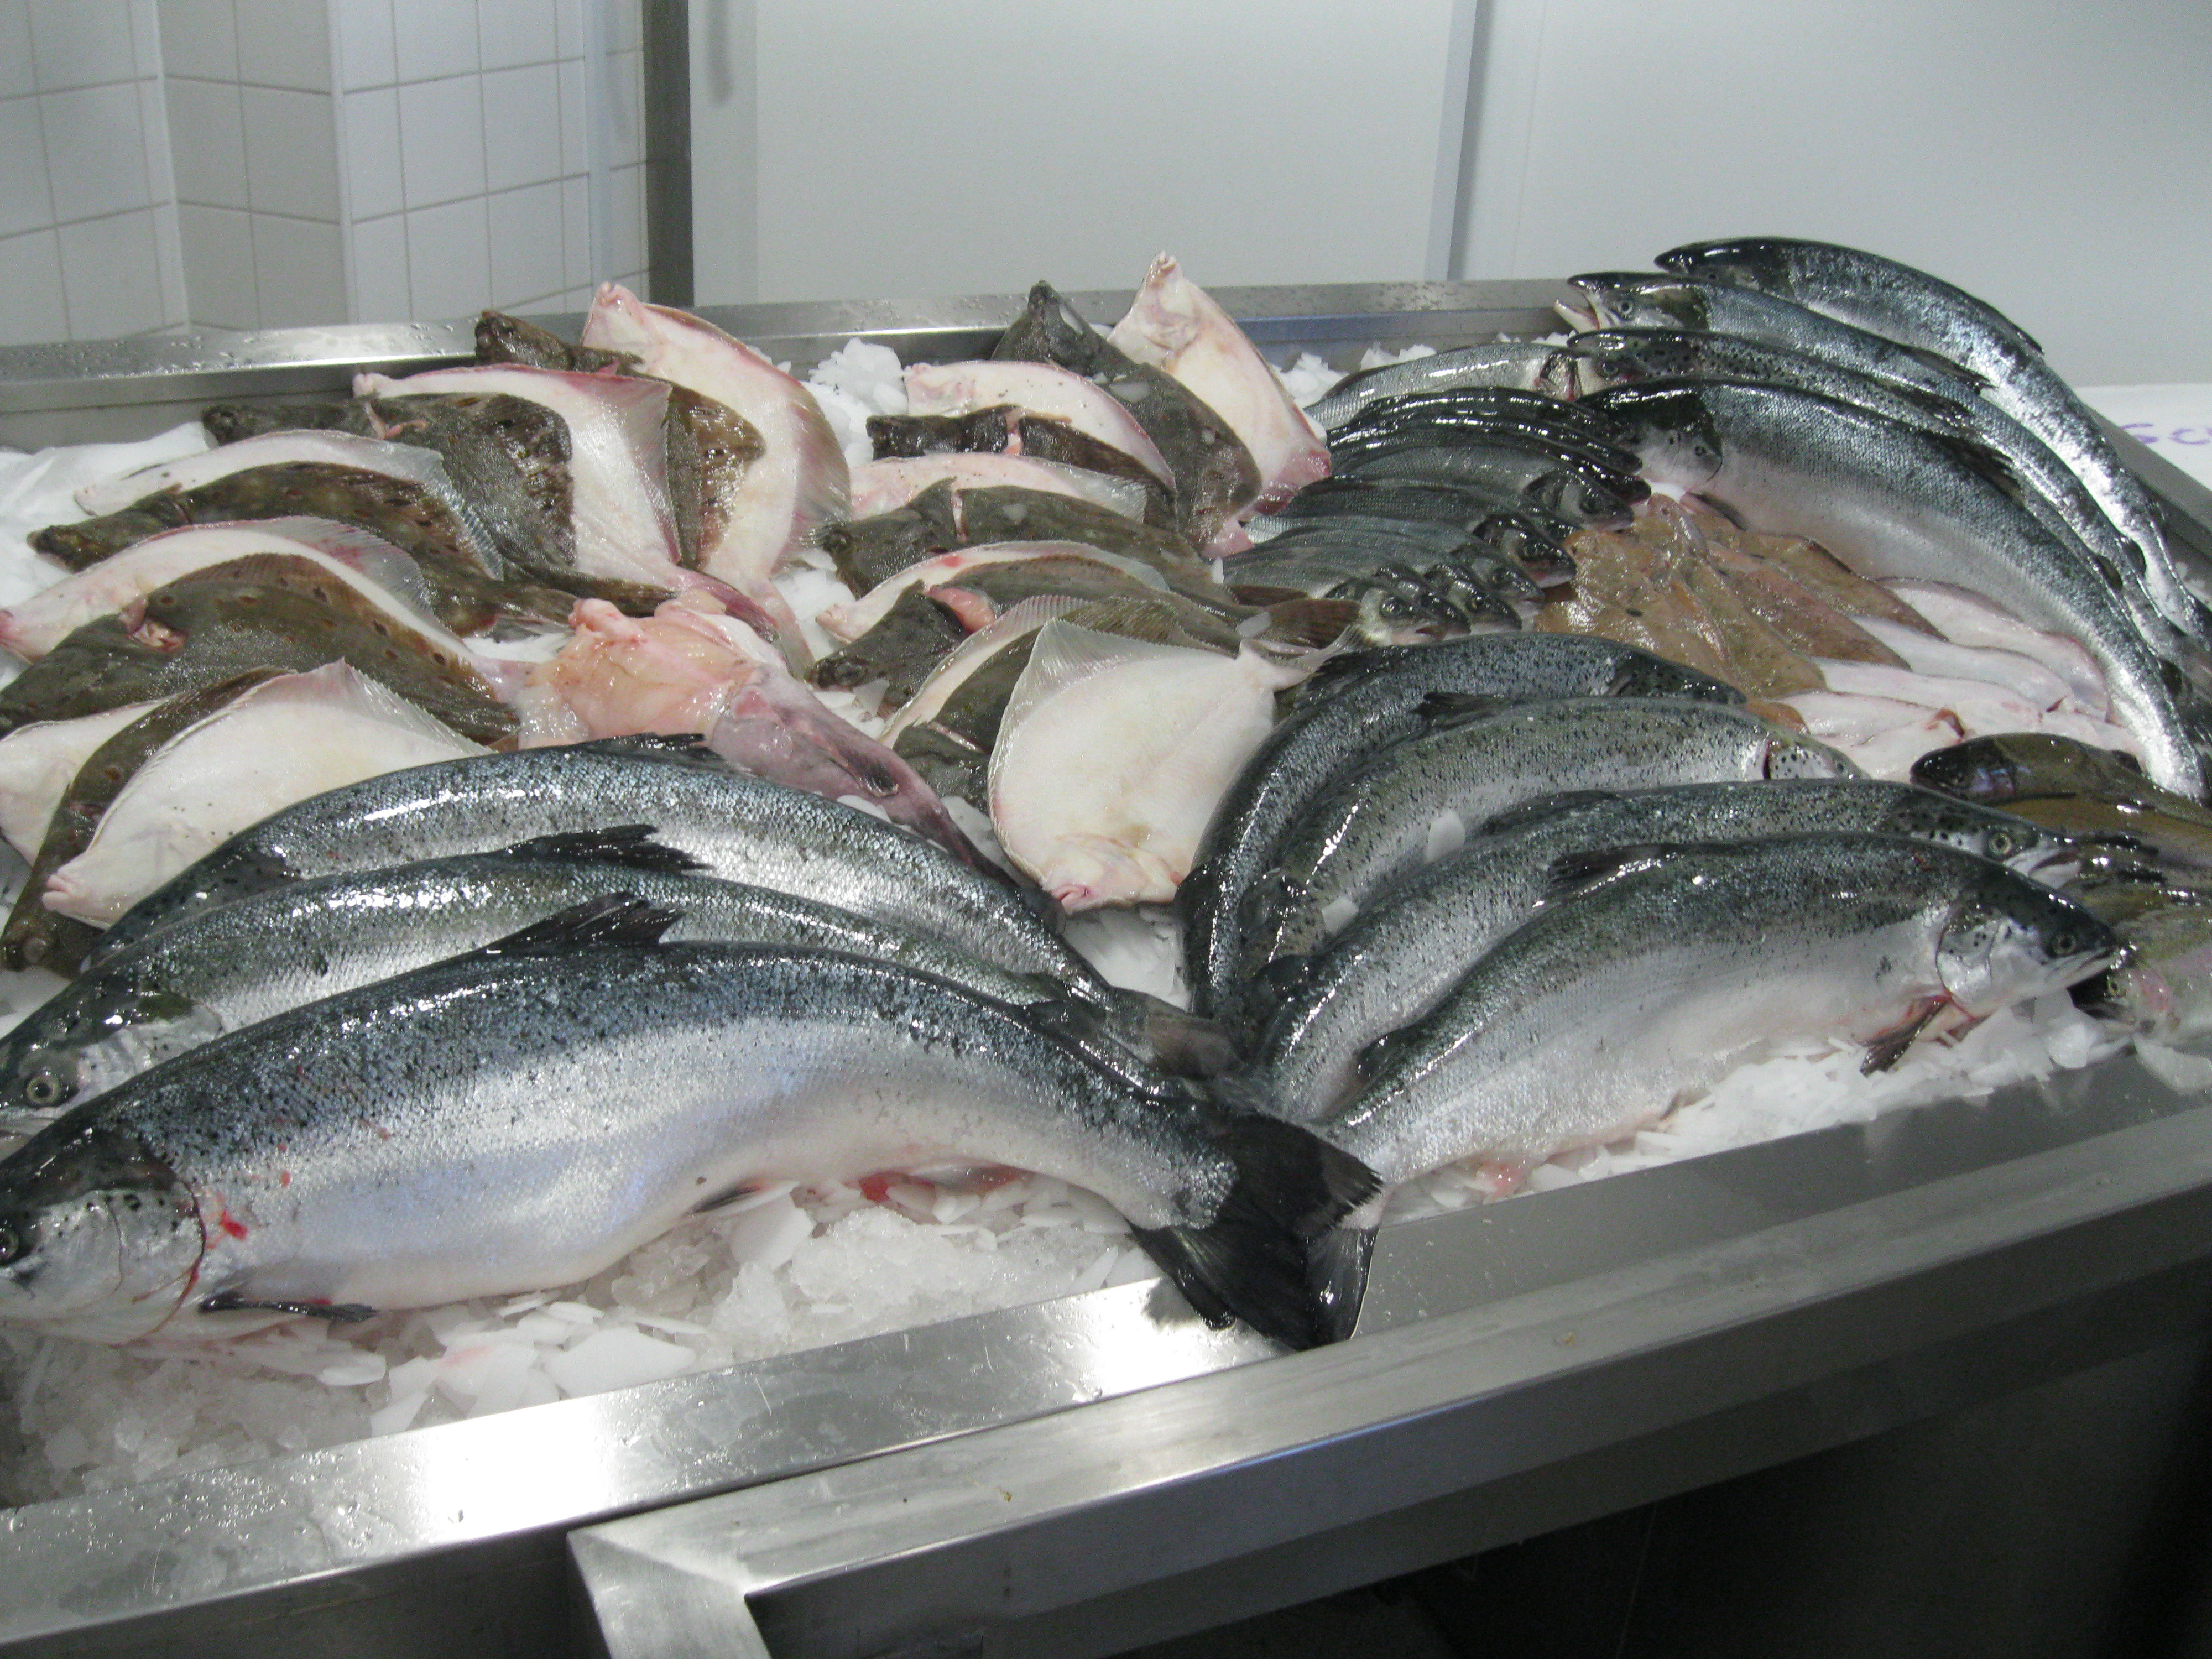 Billingsgate fish market and seafood school london for Fresh fish market near me